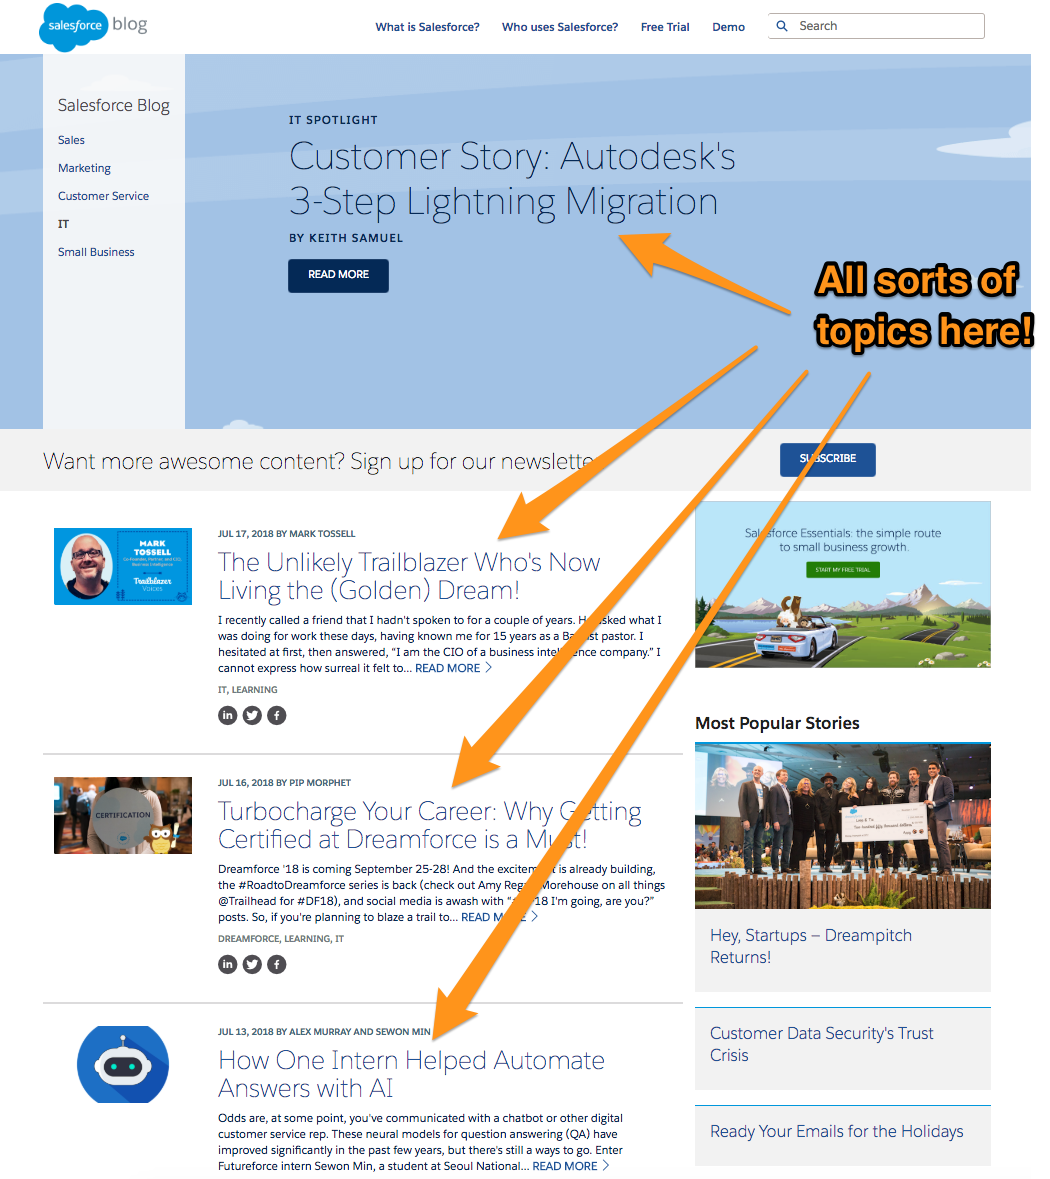 The many topics on Salesforce's blog